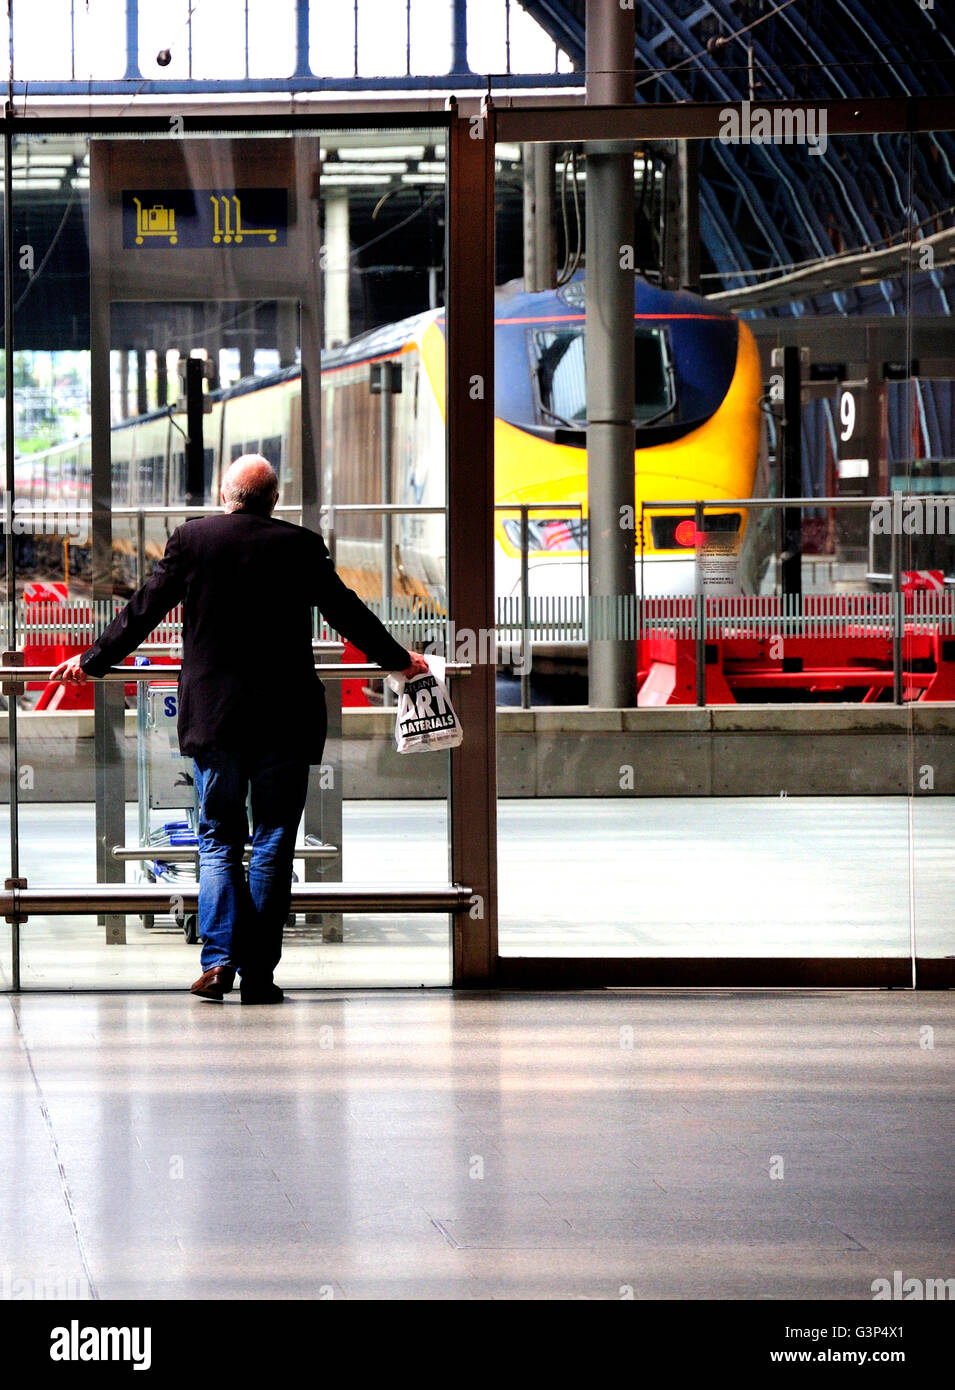 London, England, UK. St Pancras International Railway Station. Man waiting by Eurostar terminal - Stock Image